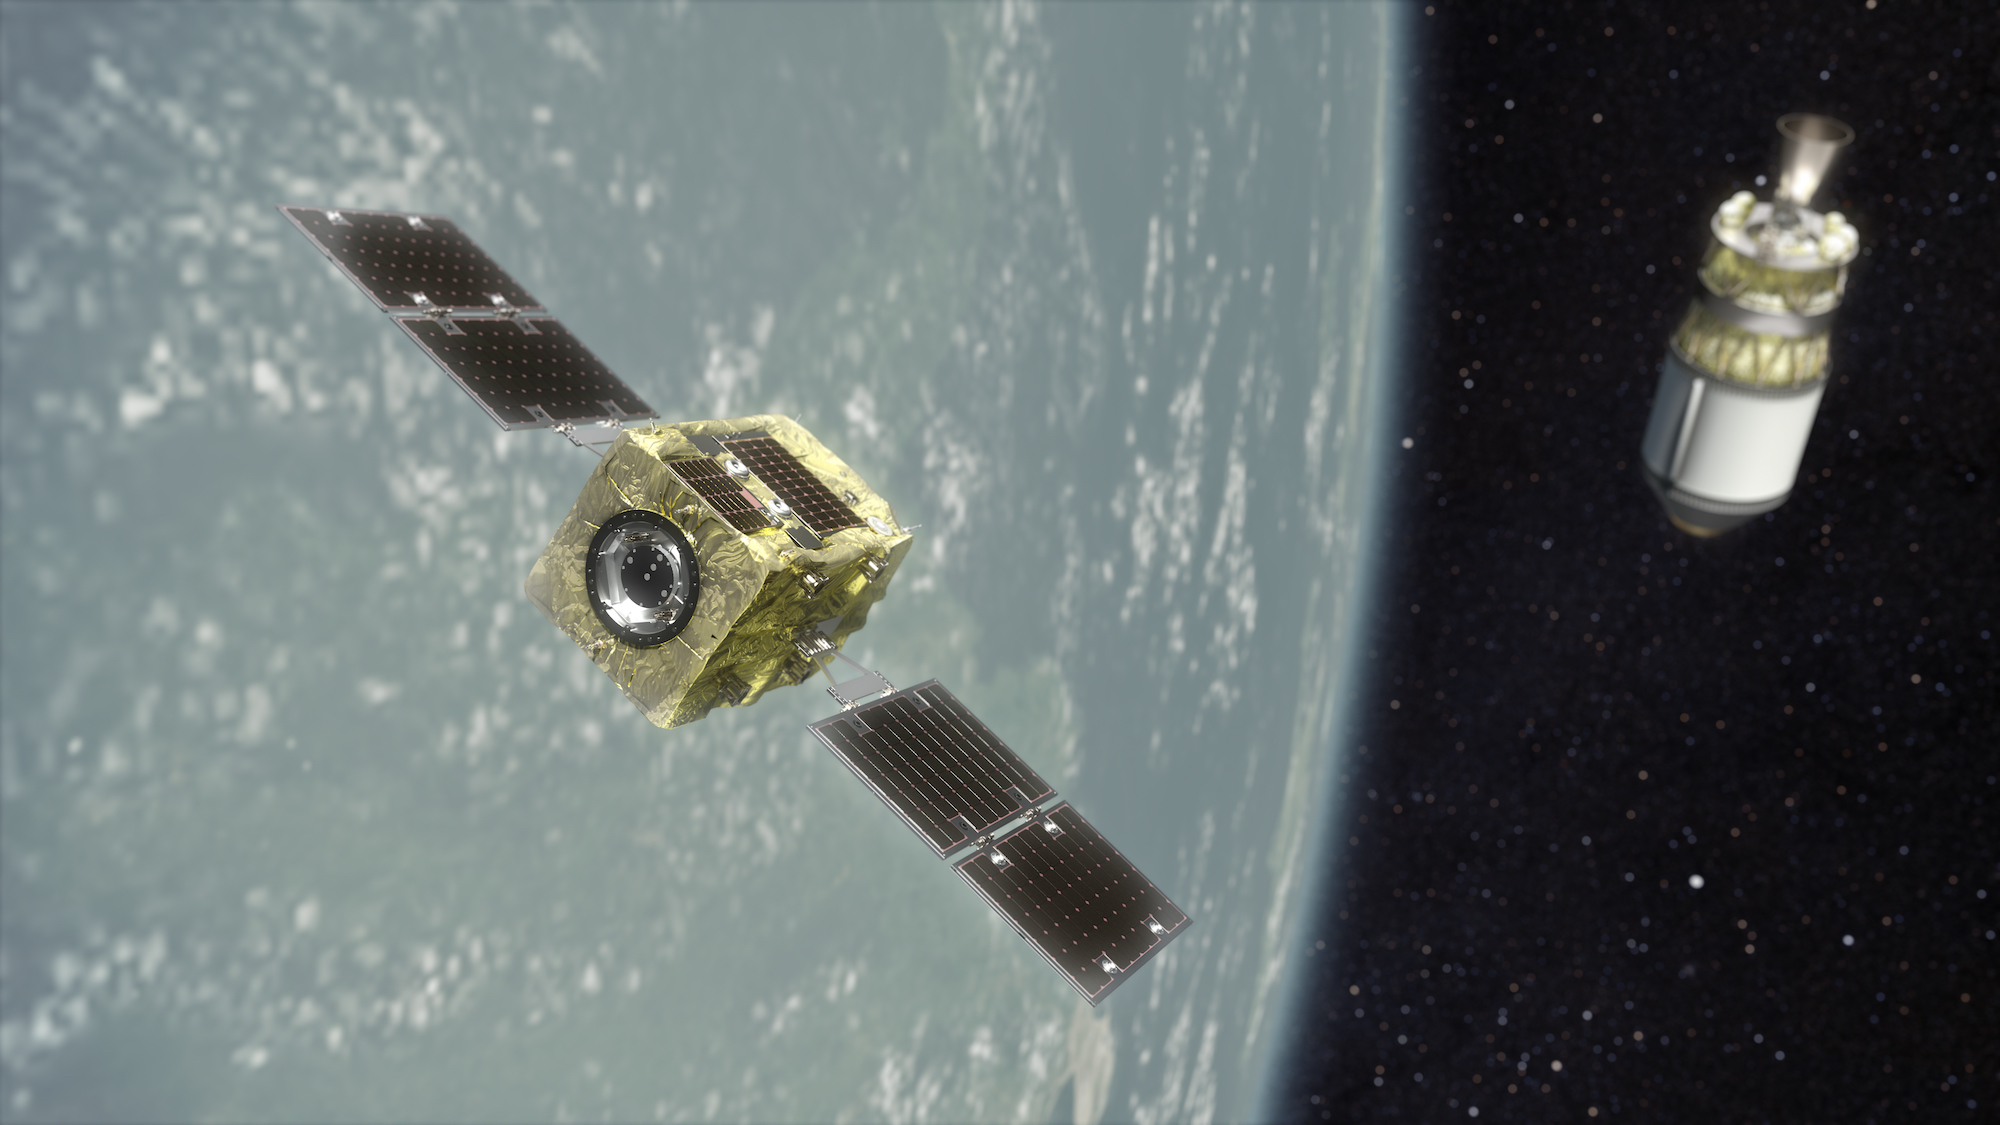 Orbital debris startup Astroscale chosen by JAXA for its first space junk removal mission